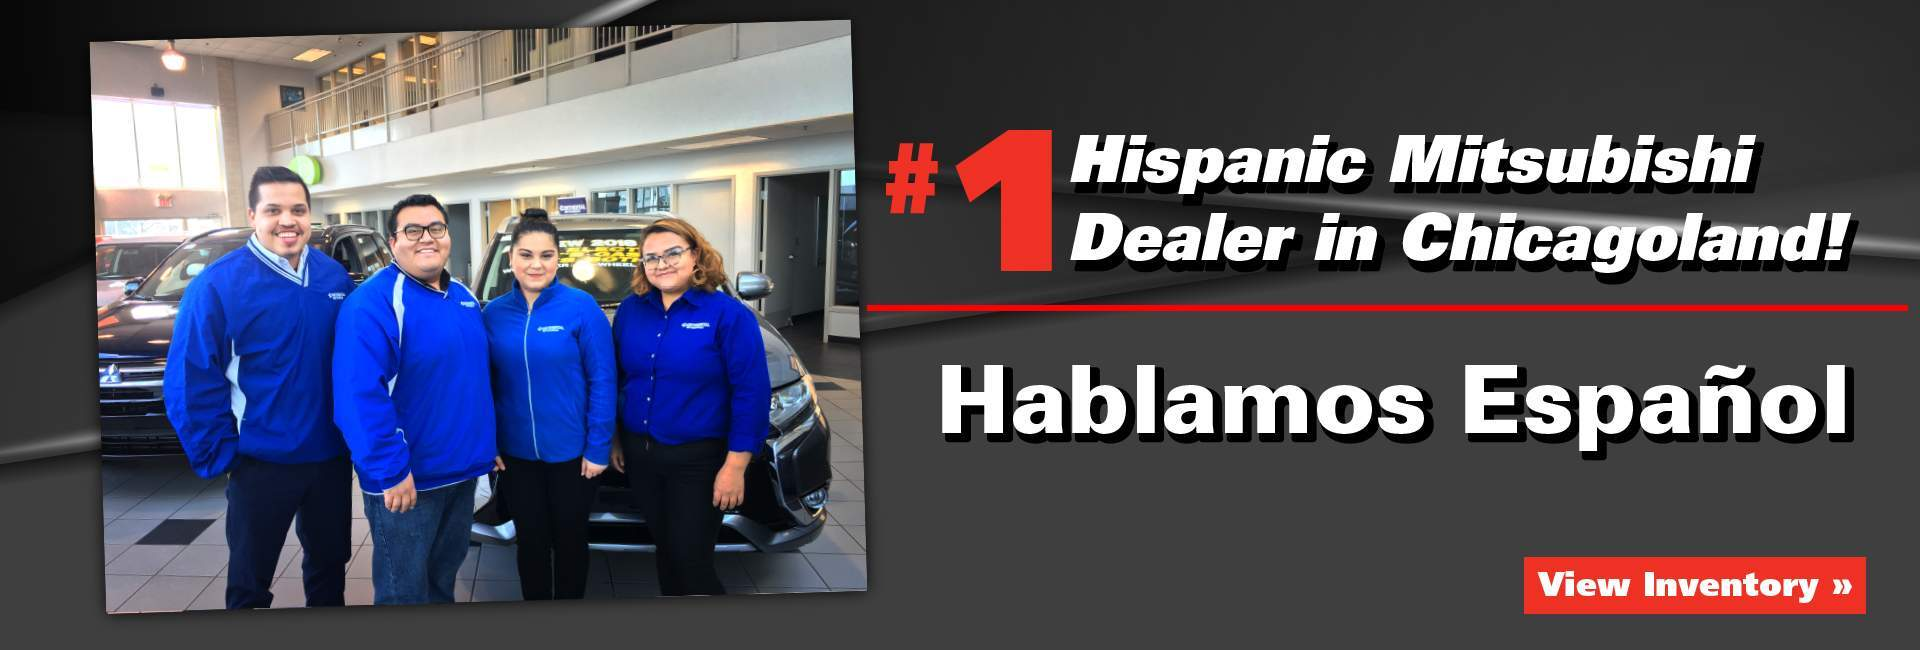 Largest New Car Dealer selling Mistubishi to Hispanics